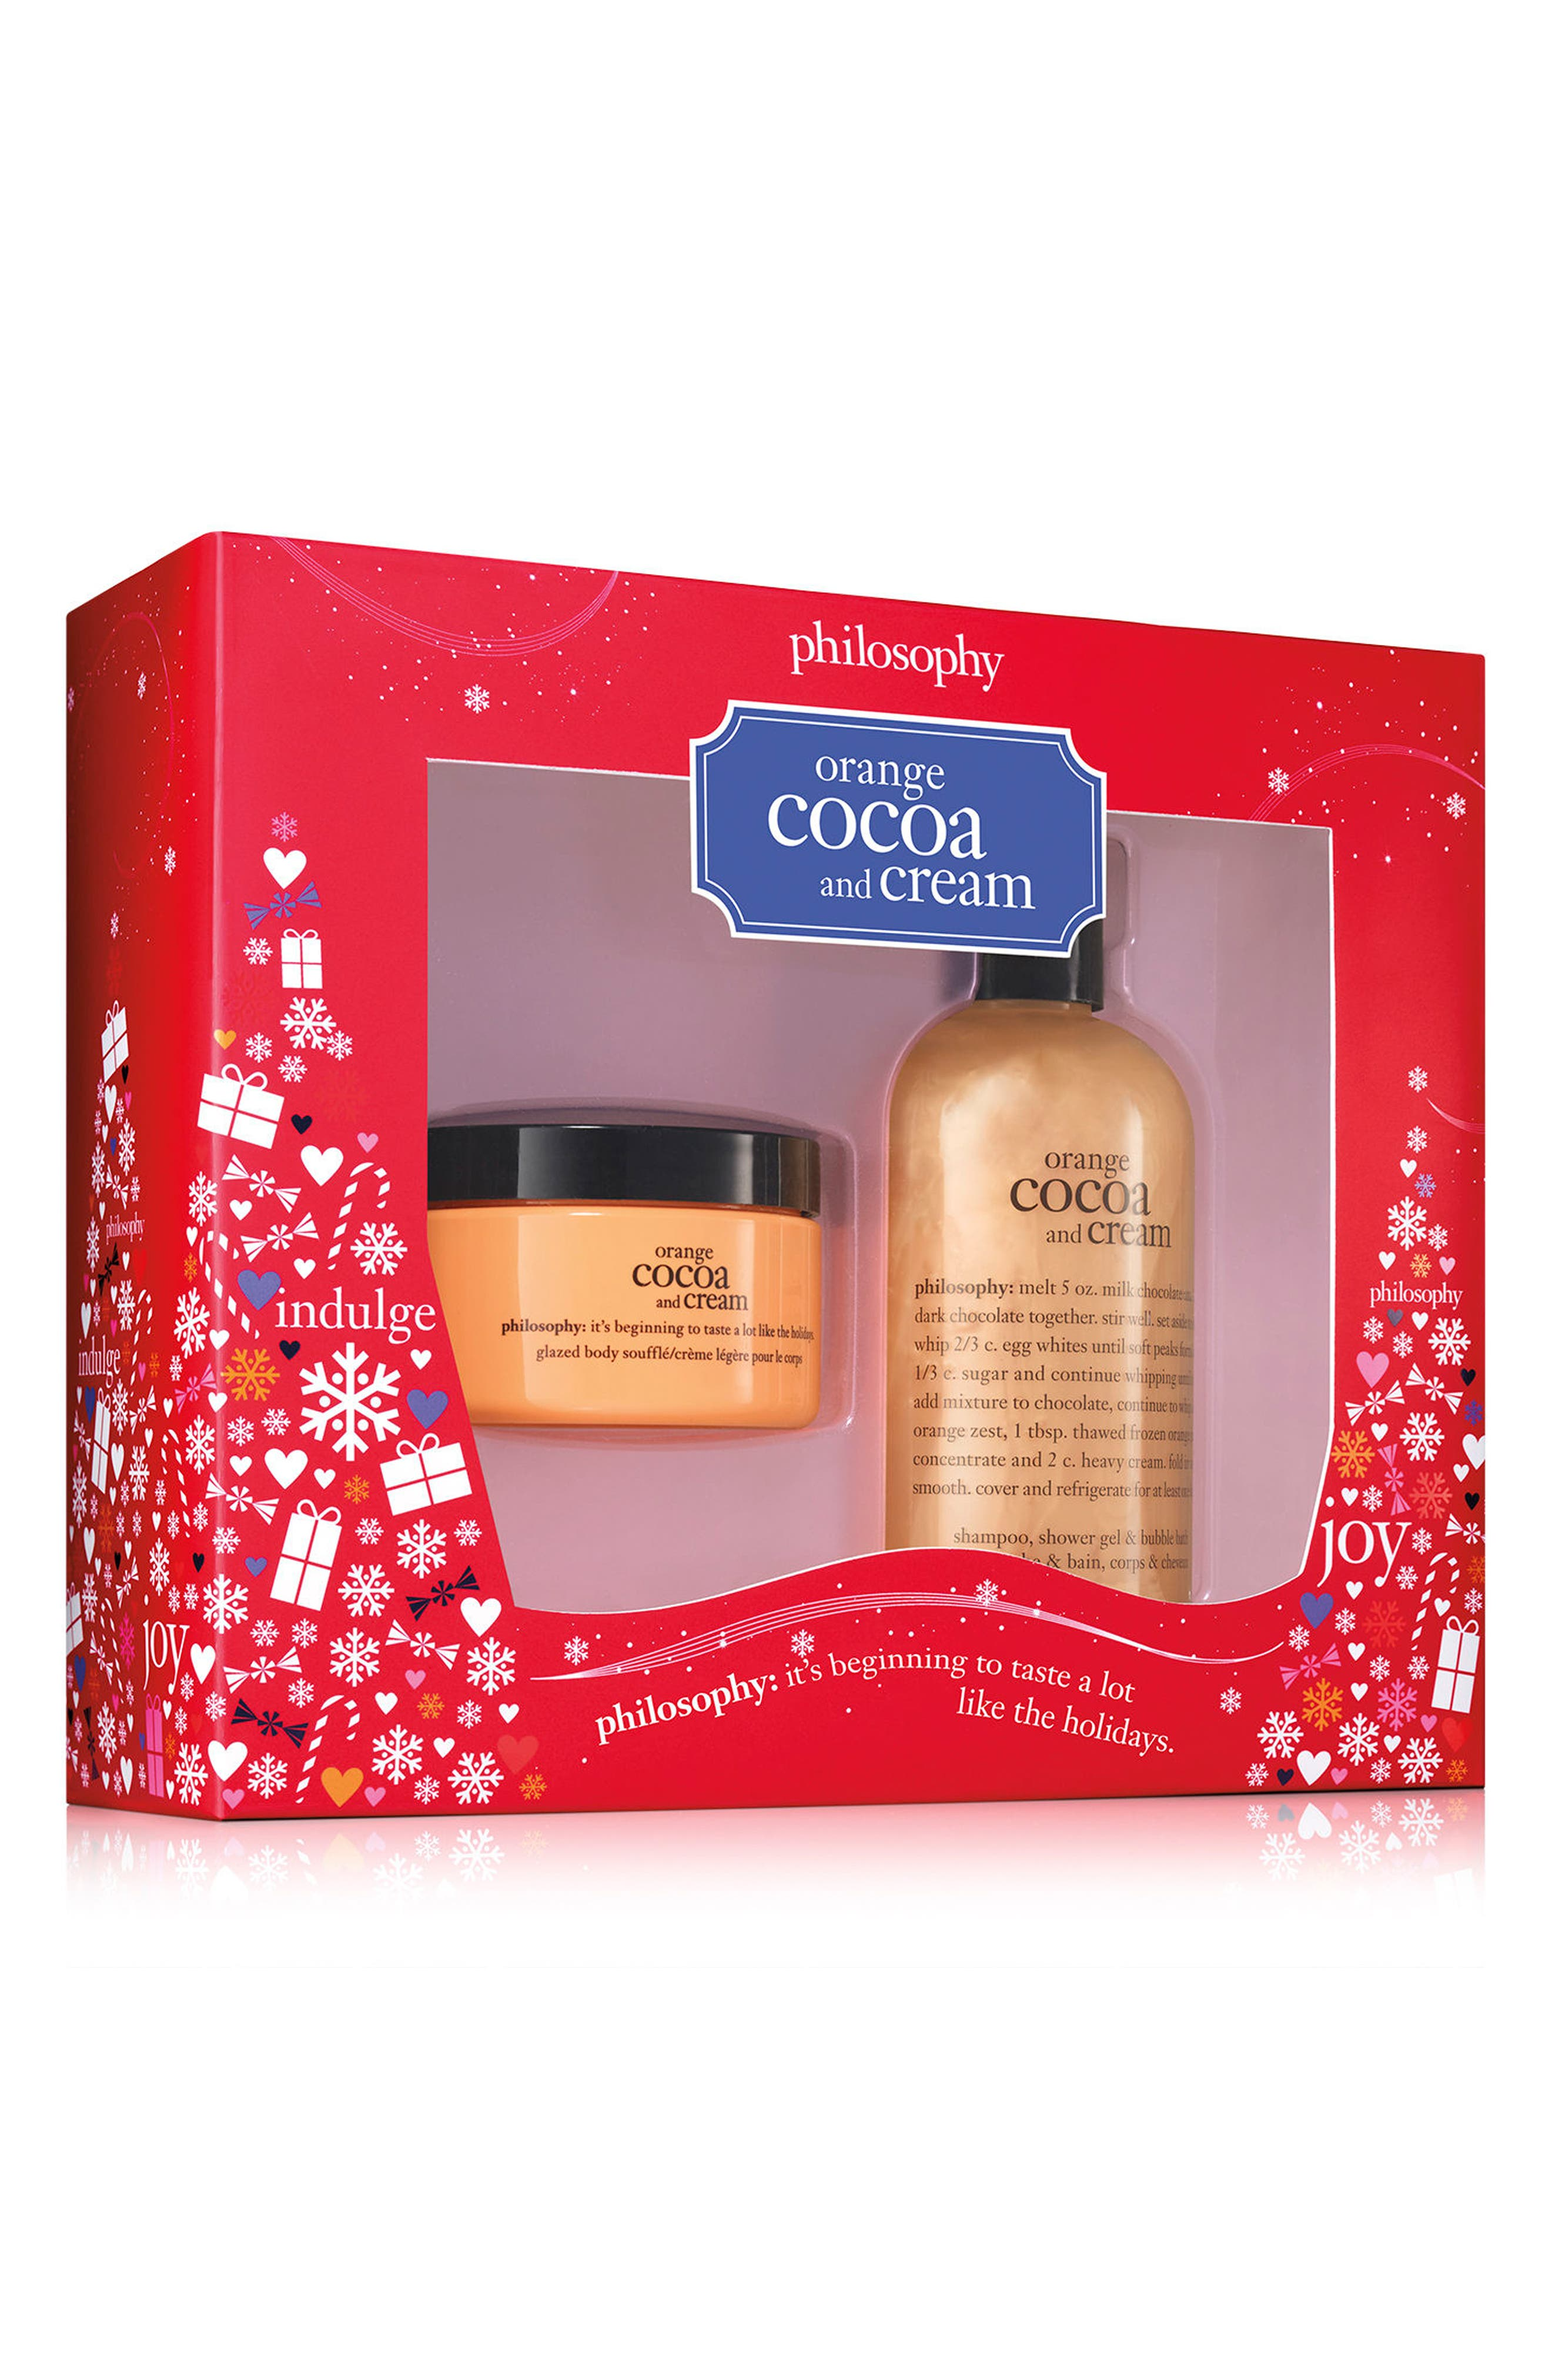 philosophy orange cocoa and cream duo (Limited Edition)